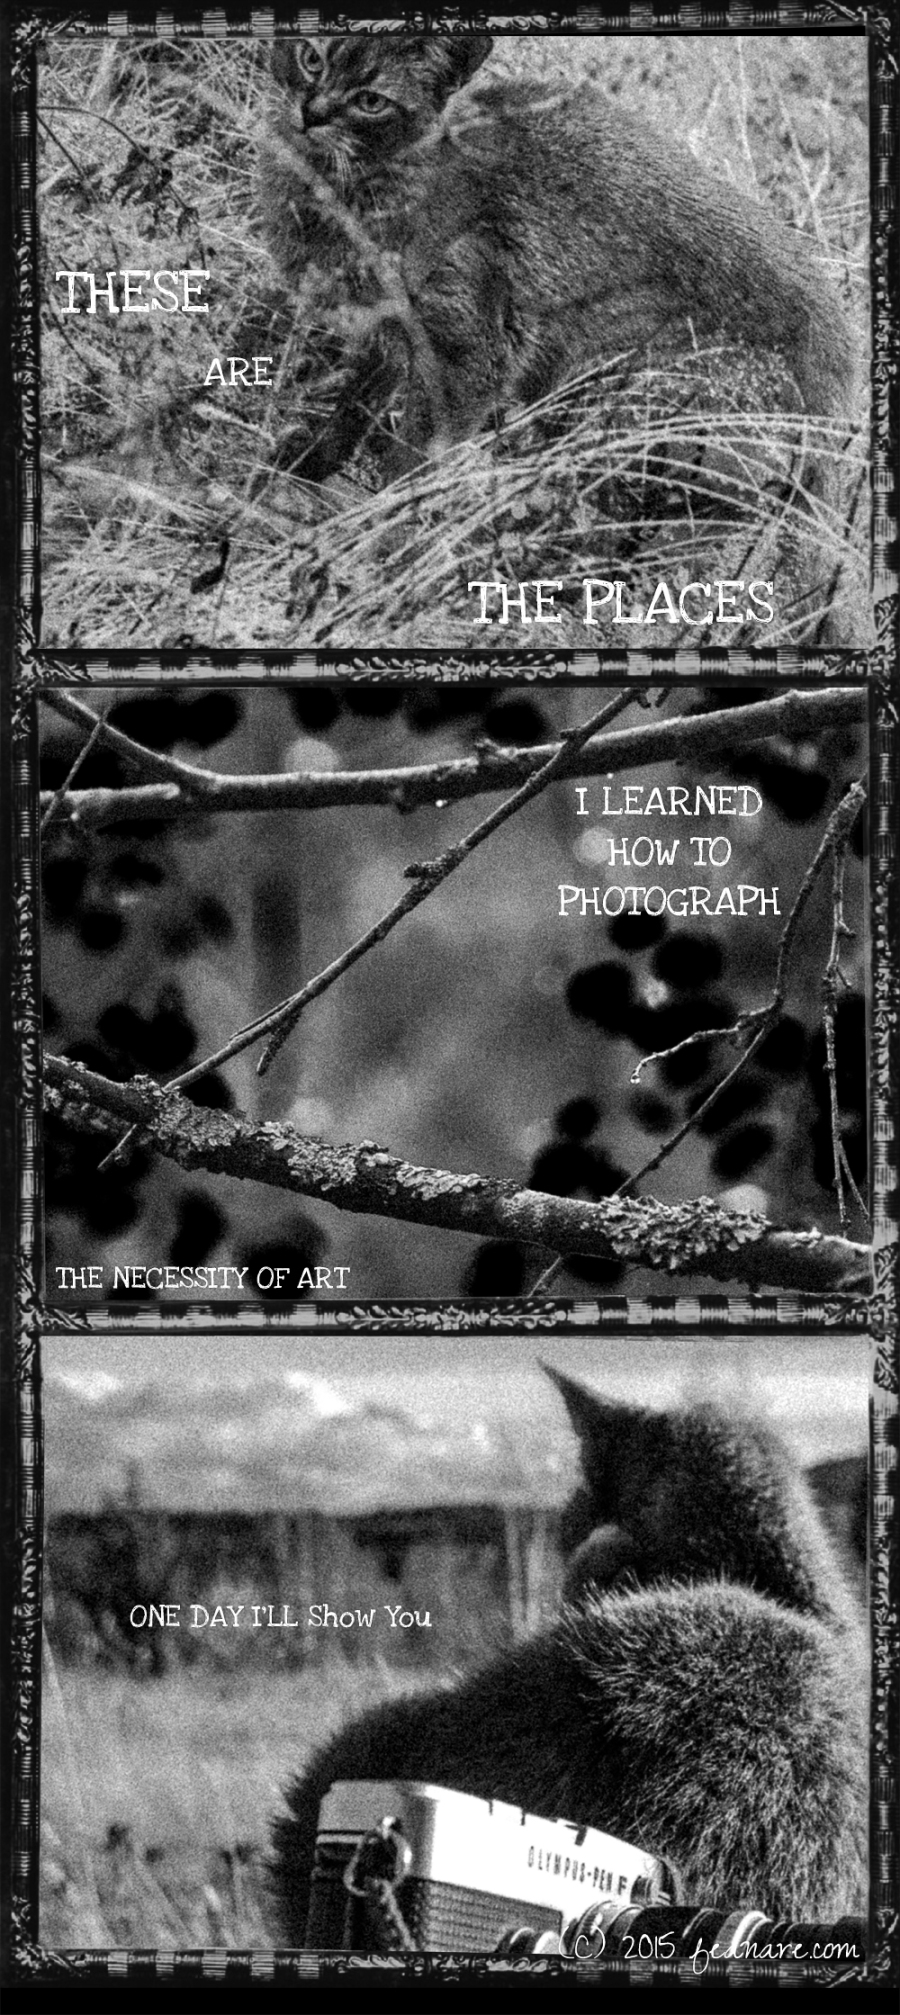 The Photographer Cat: These are the places I learned how to photograph -  the necessity of art. One day I'll show you. (c) 2015 feanare.com